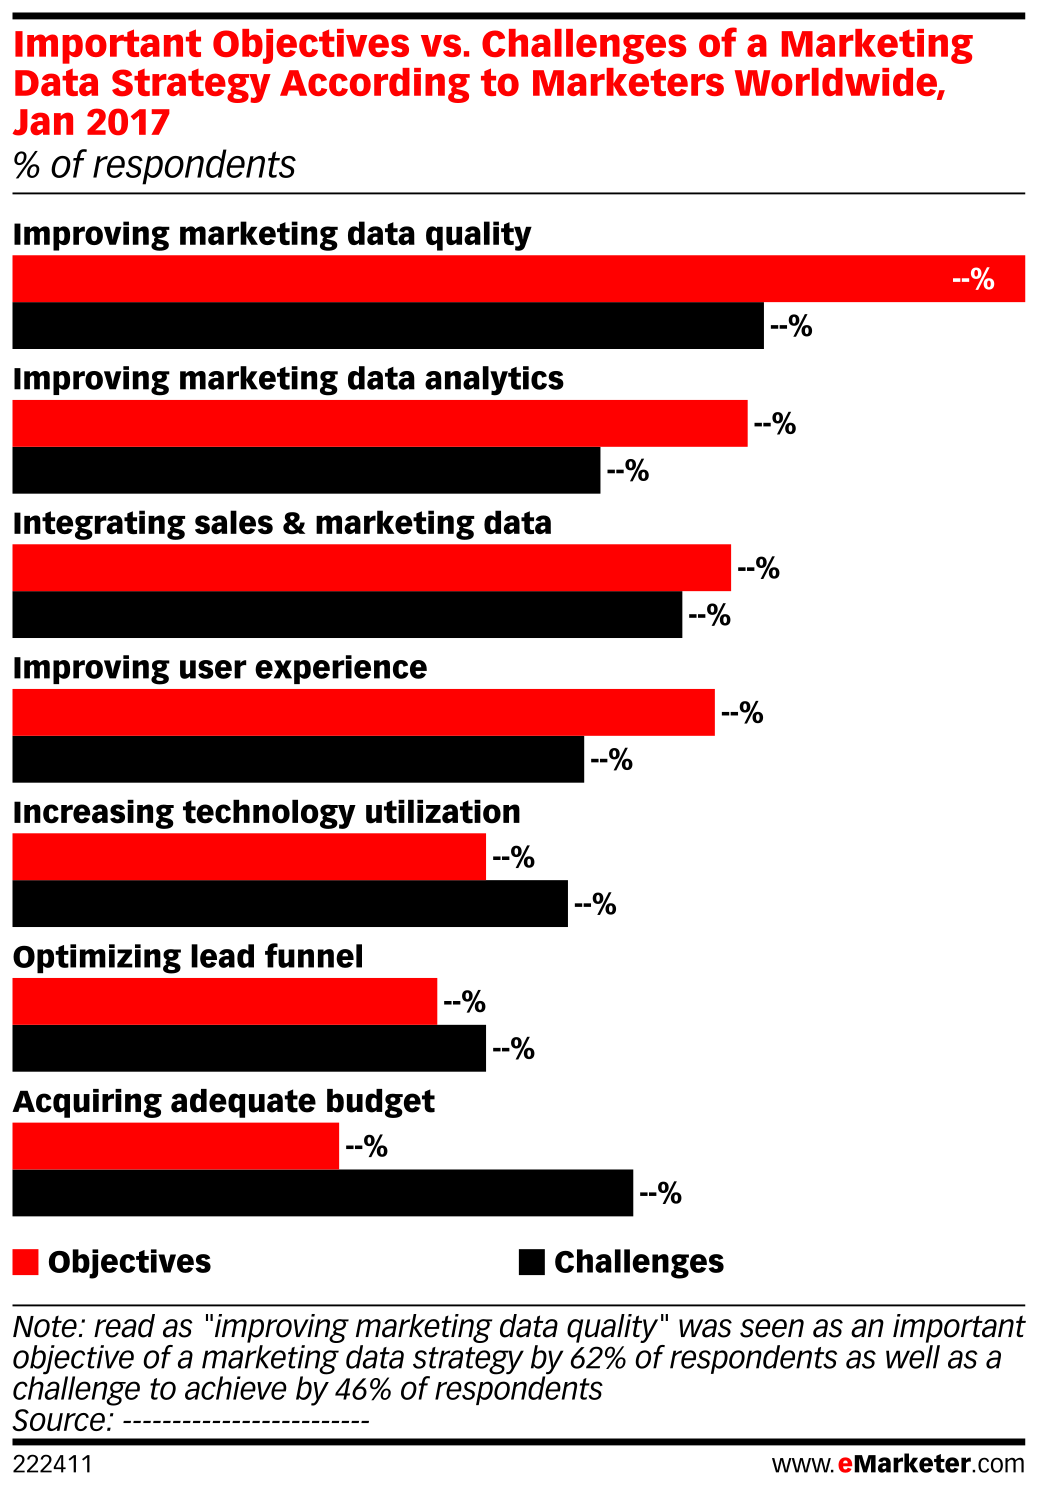 Important Objectives vs. Challenges of a Marketing Data Strategy According to Marketers Worldwide, Jan 2017 (% of respondents)